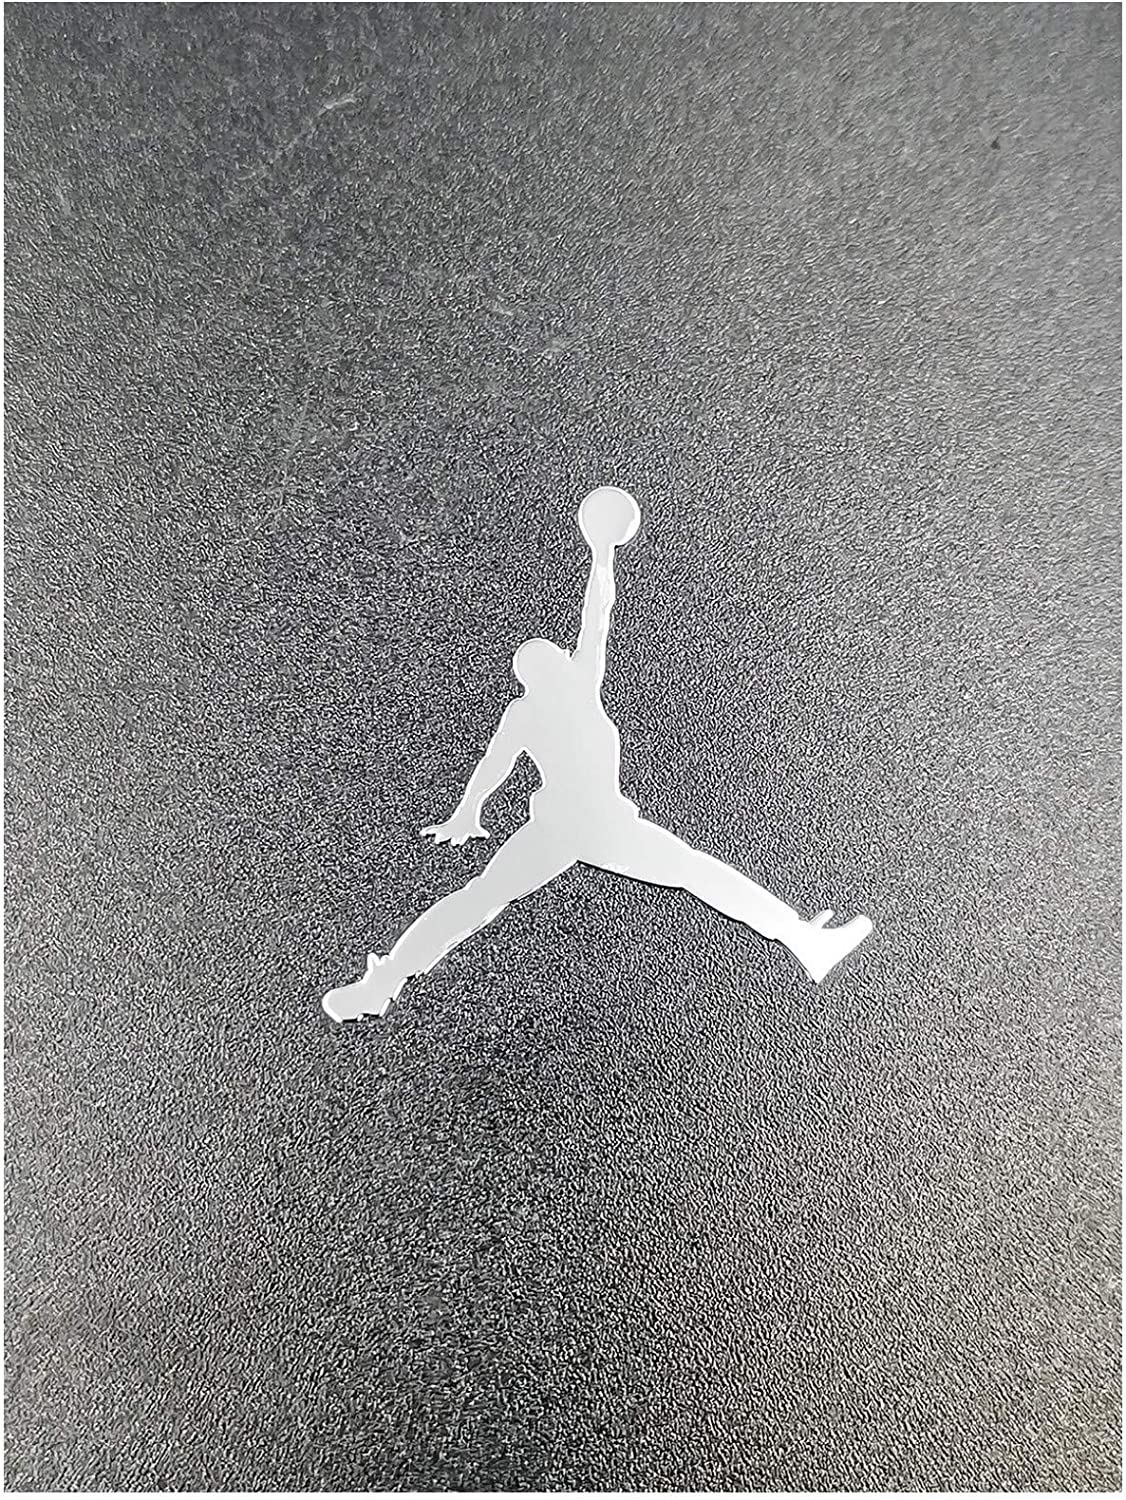 Wallner 2 pcs Metal Adhesive Air Jordan Jumpman Logo Vinyl Sticker Cellphone Laptop case Decal Stickers (Silver, 1.5inch)